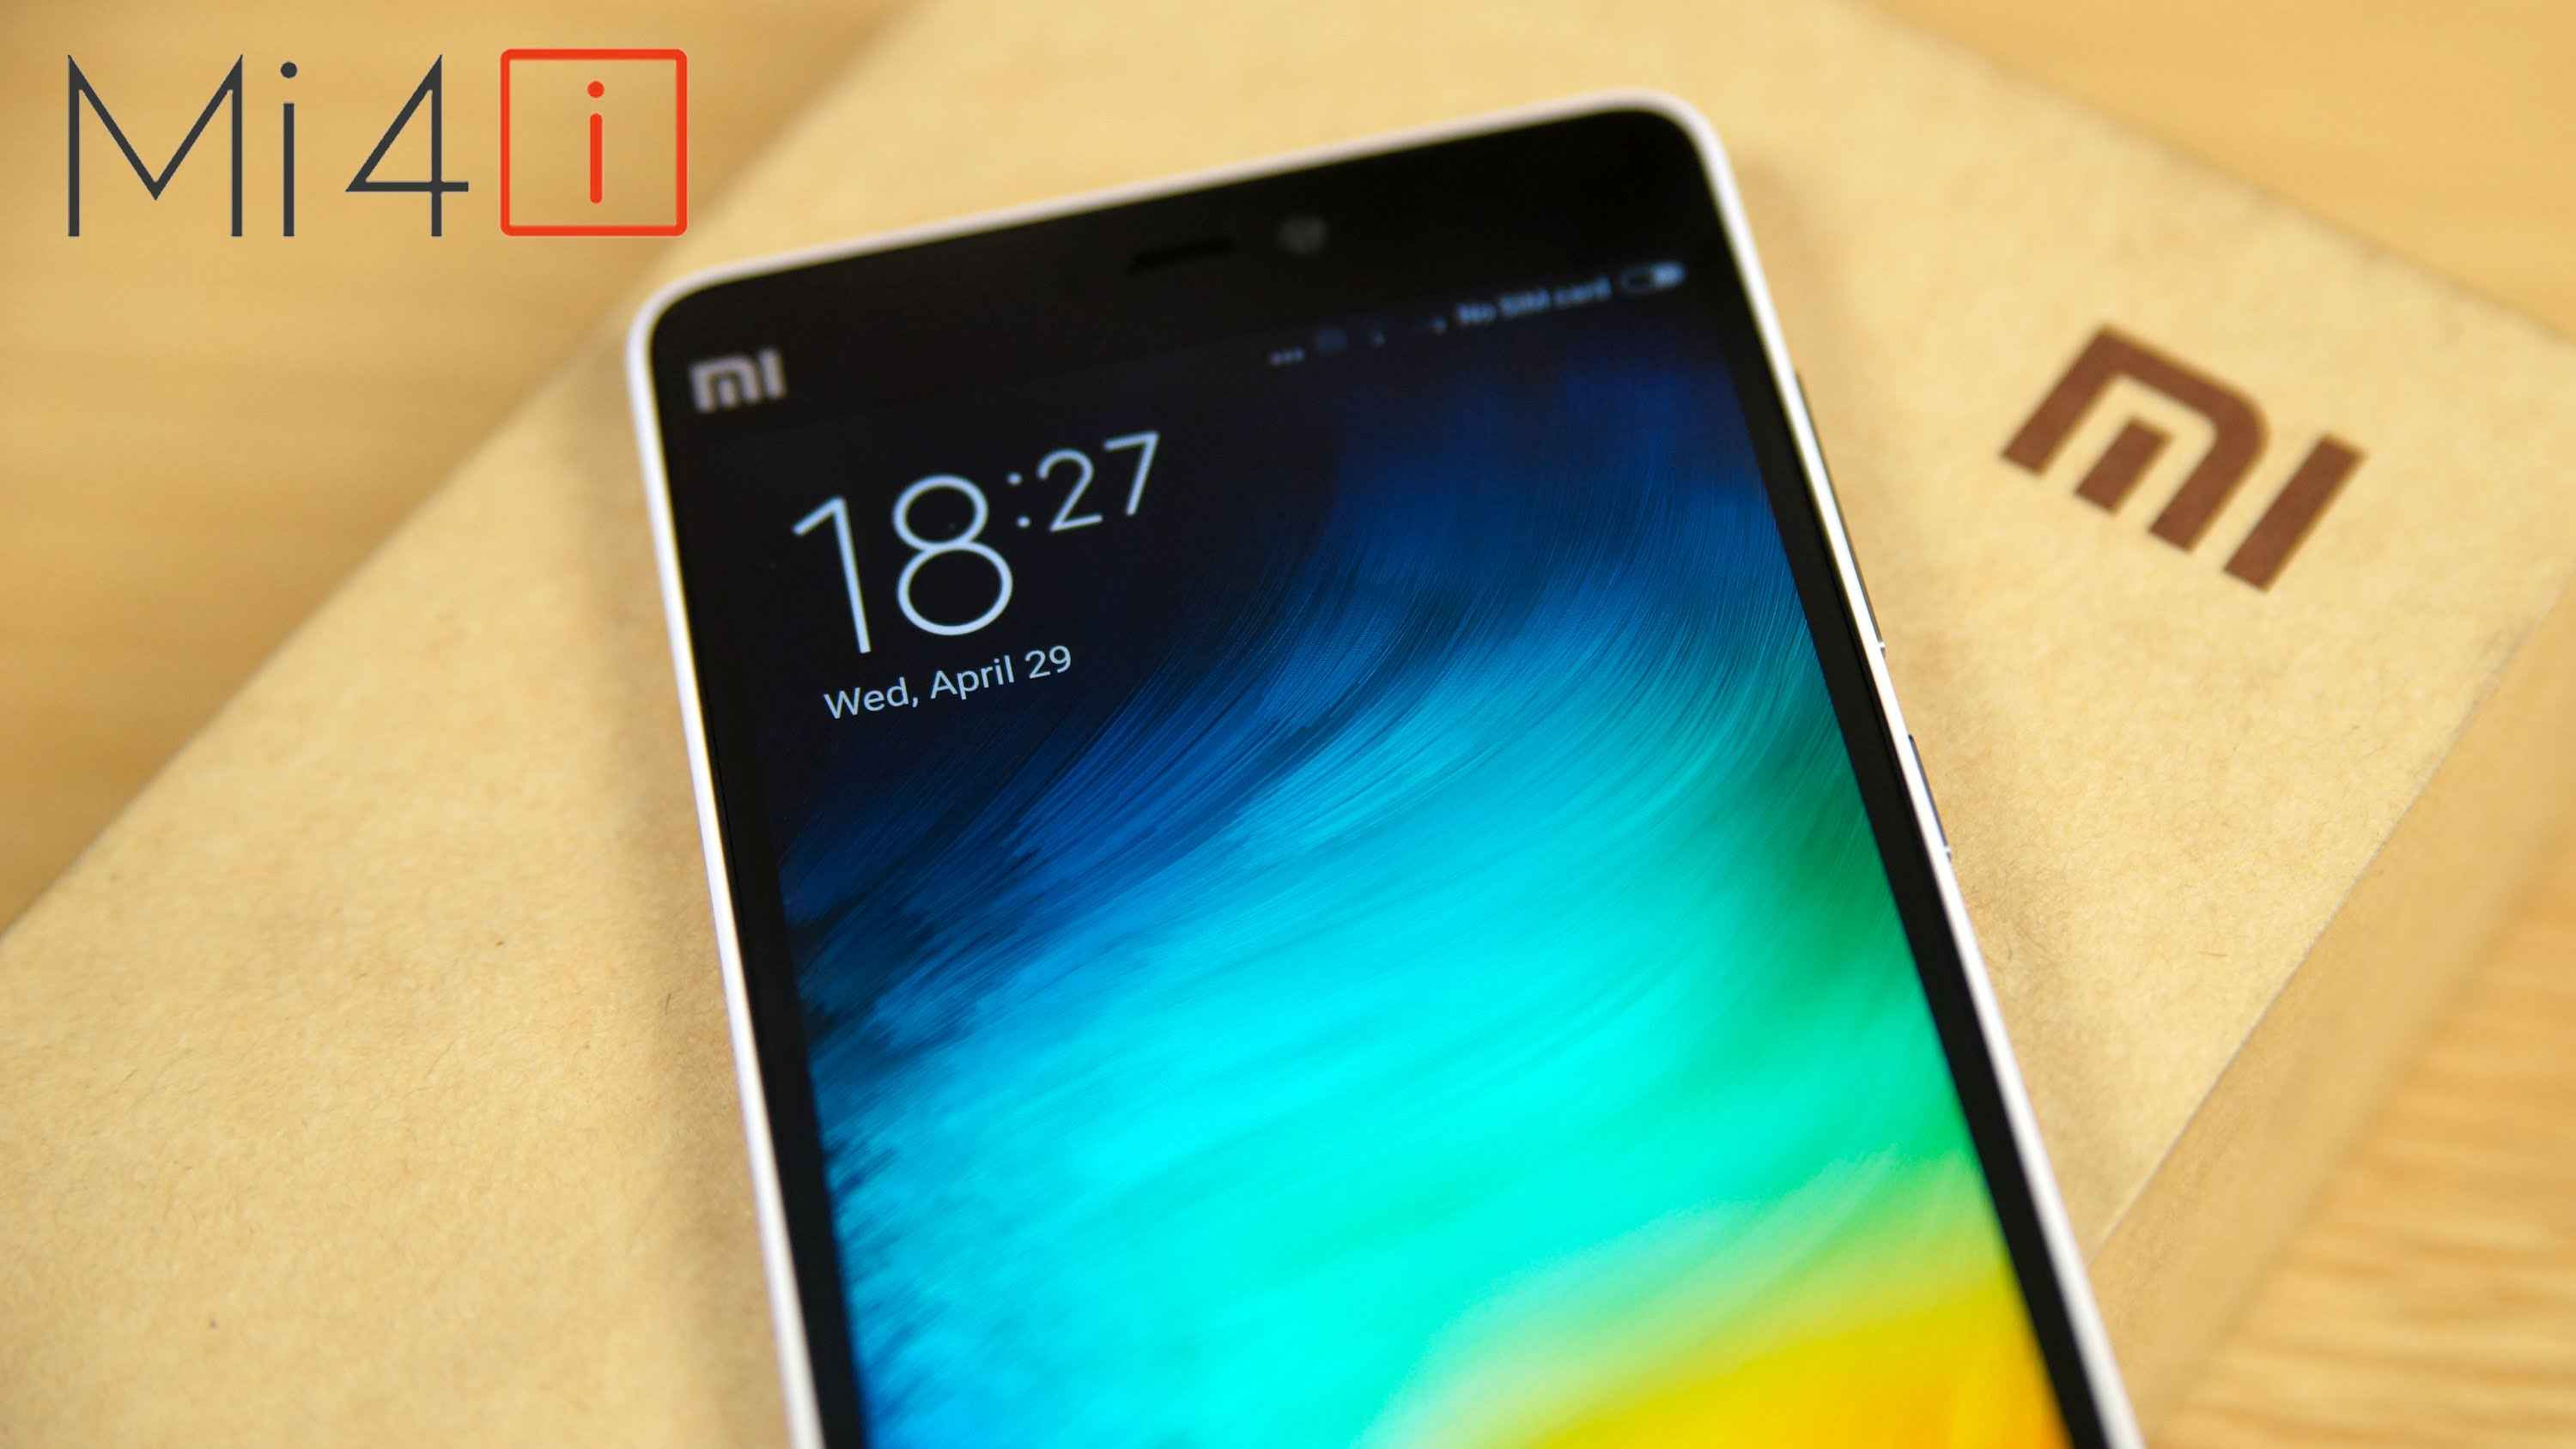 Xiaomi Mi 4i to be available without registration on May 25, 26